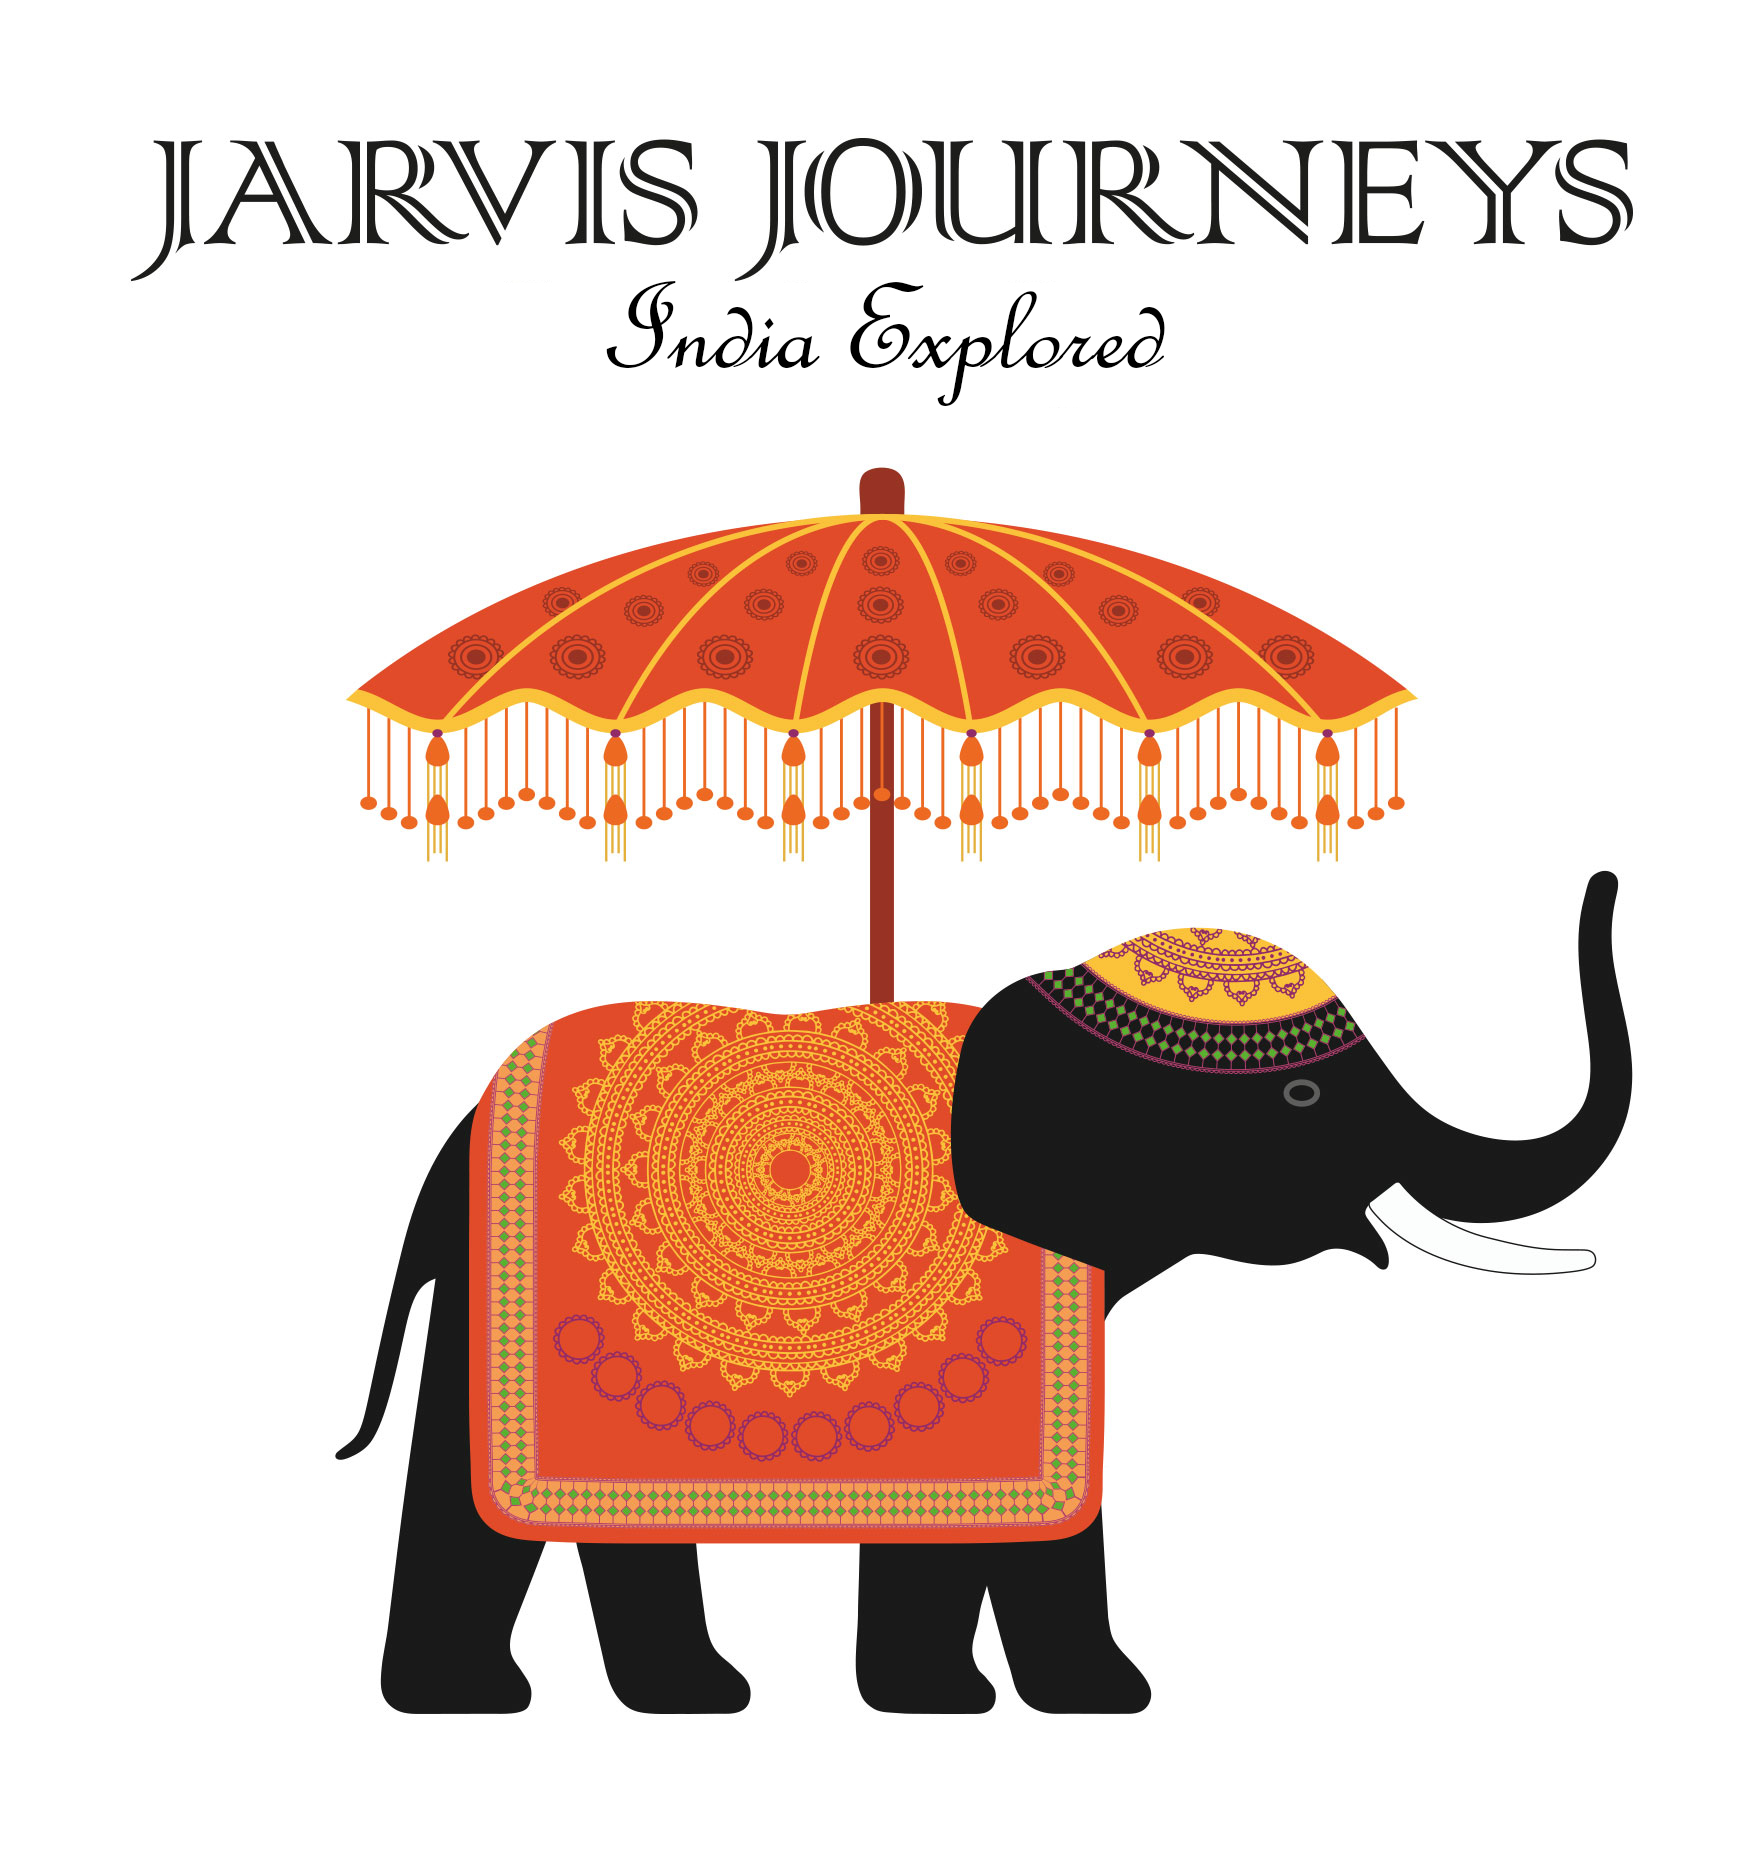 Jarvis Journeys